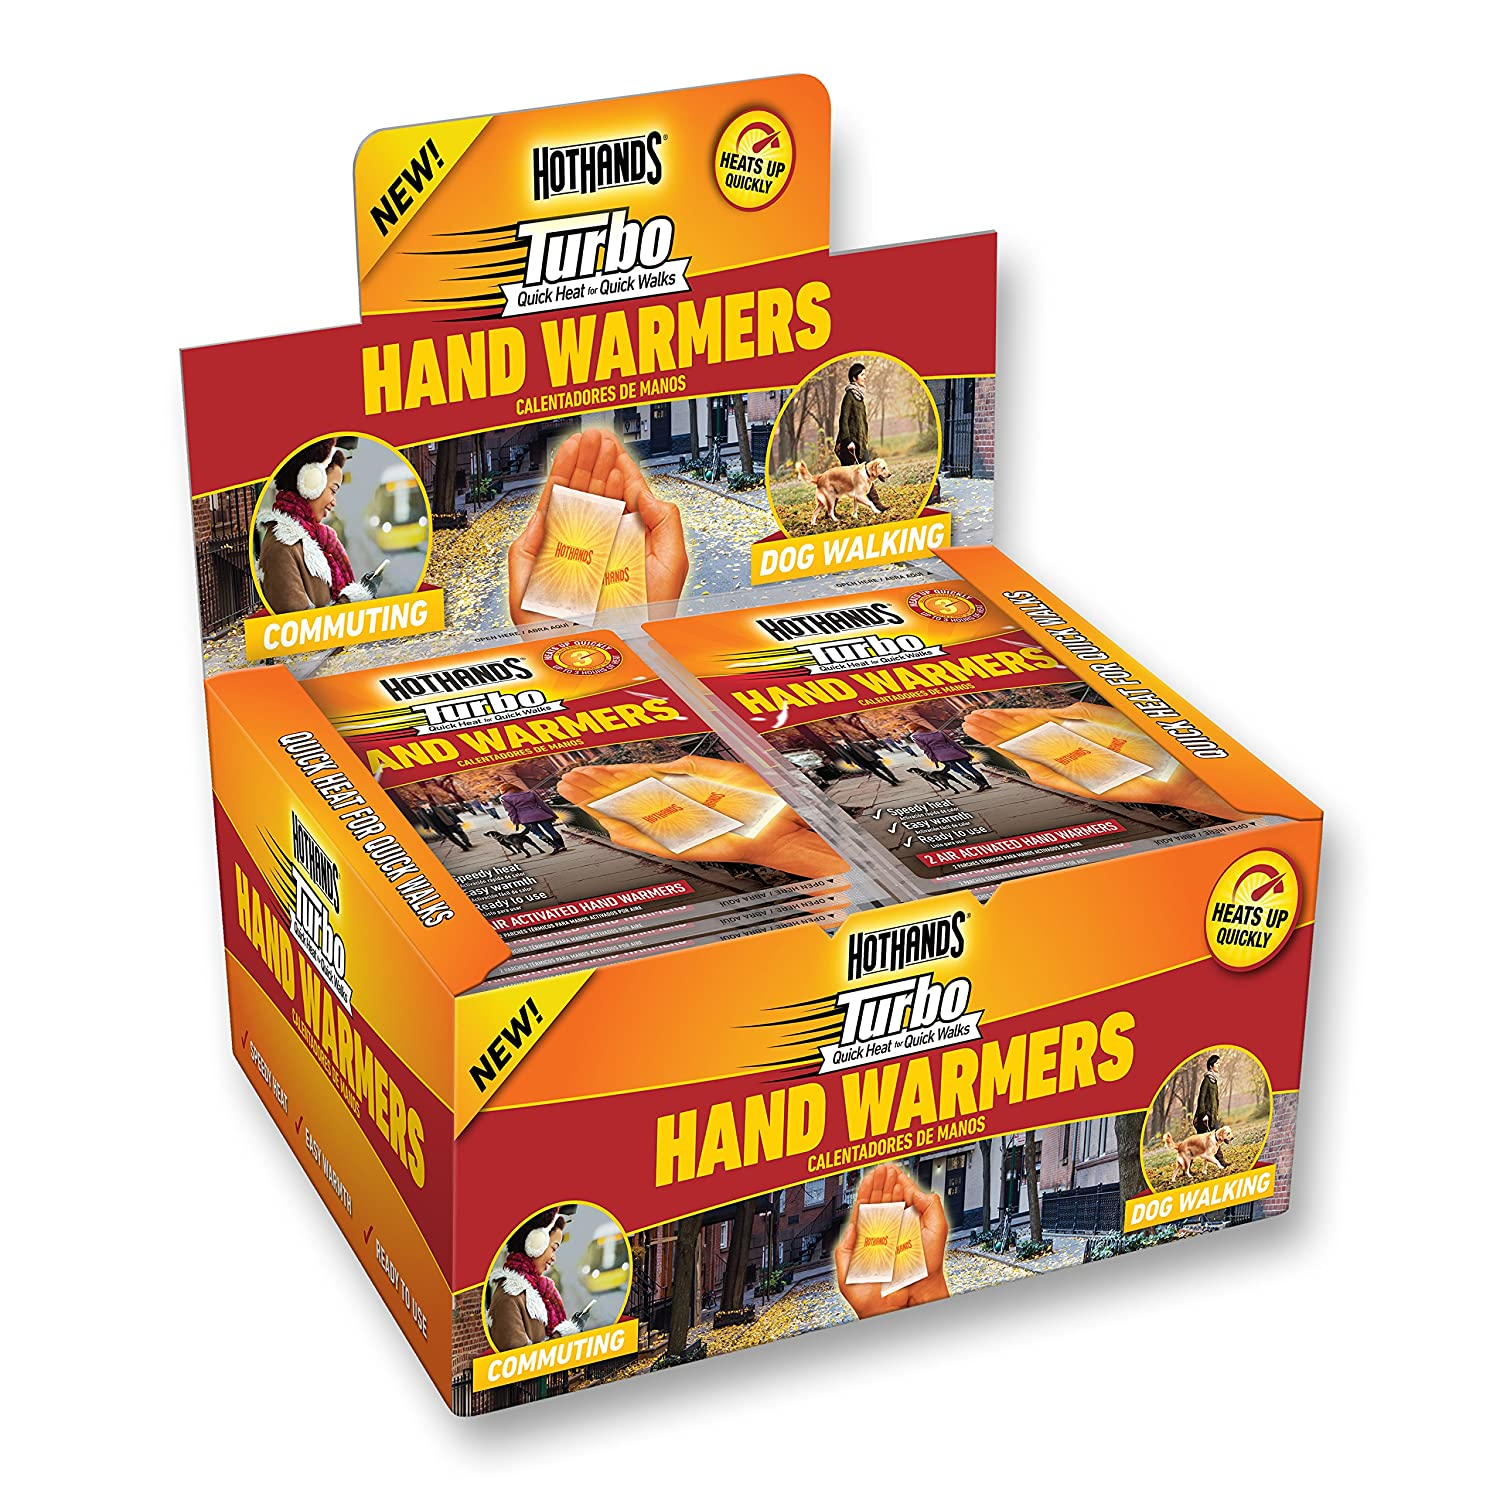 Amazon.com: HotHands Turbo Hand Warmers - Long Lasting Safe Natural Odorless Air Activated Warmers - Up to 3 Hours of Instant Heat - 40 Pair: Sports & ...